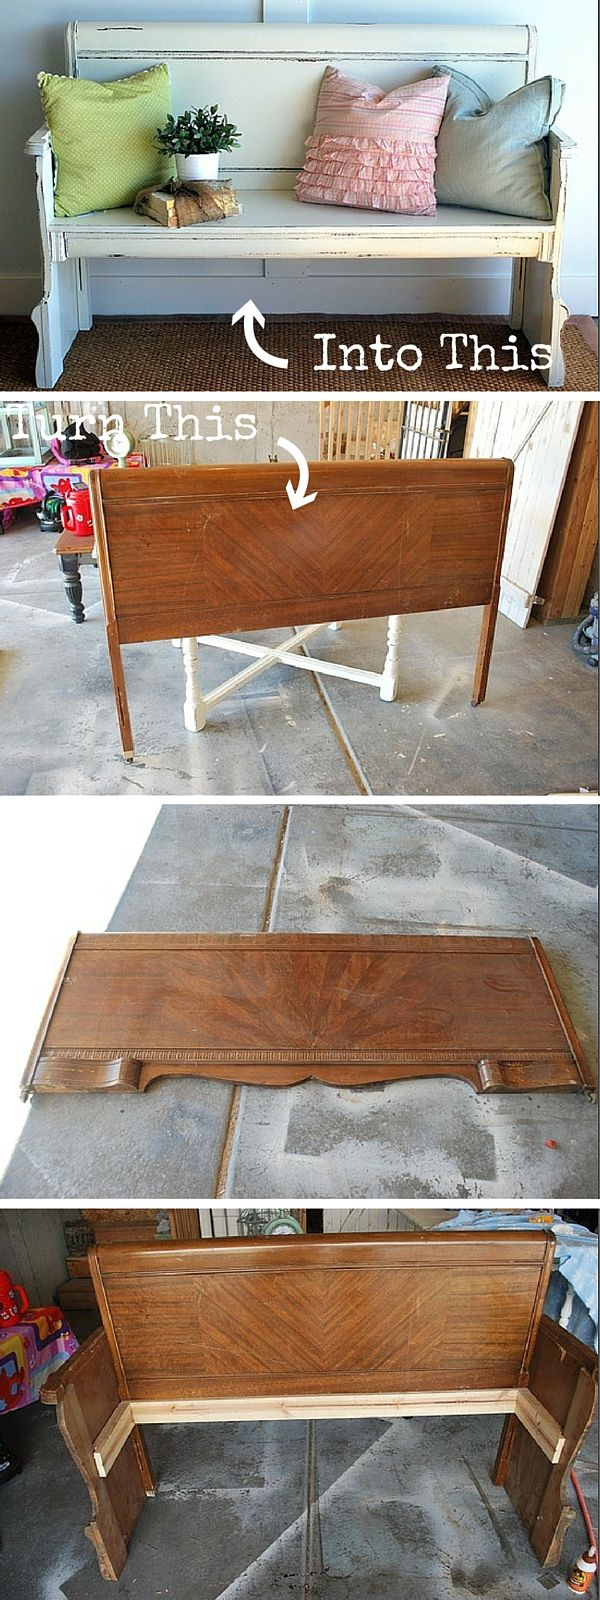 Check out the tutorial: #DIY Turn a Headboard into a Bench #crafts ...